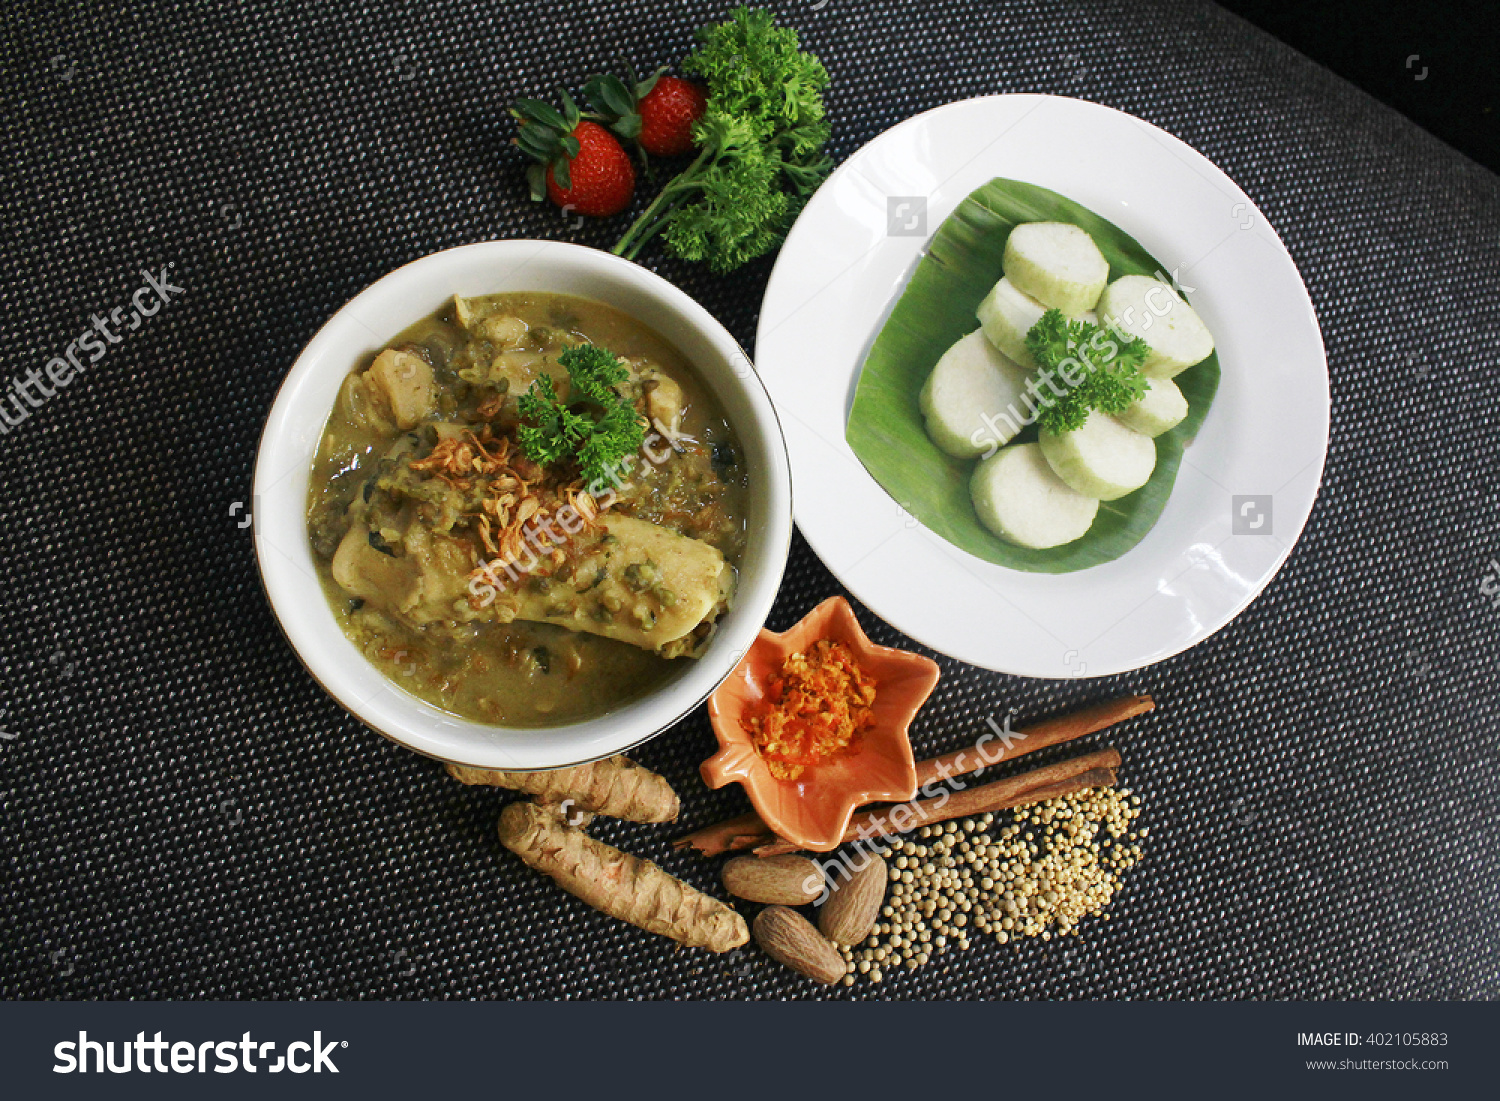 Gnarly Broth Or Kaldu Kokot In Bahasa Indonesia. Famous Food From.